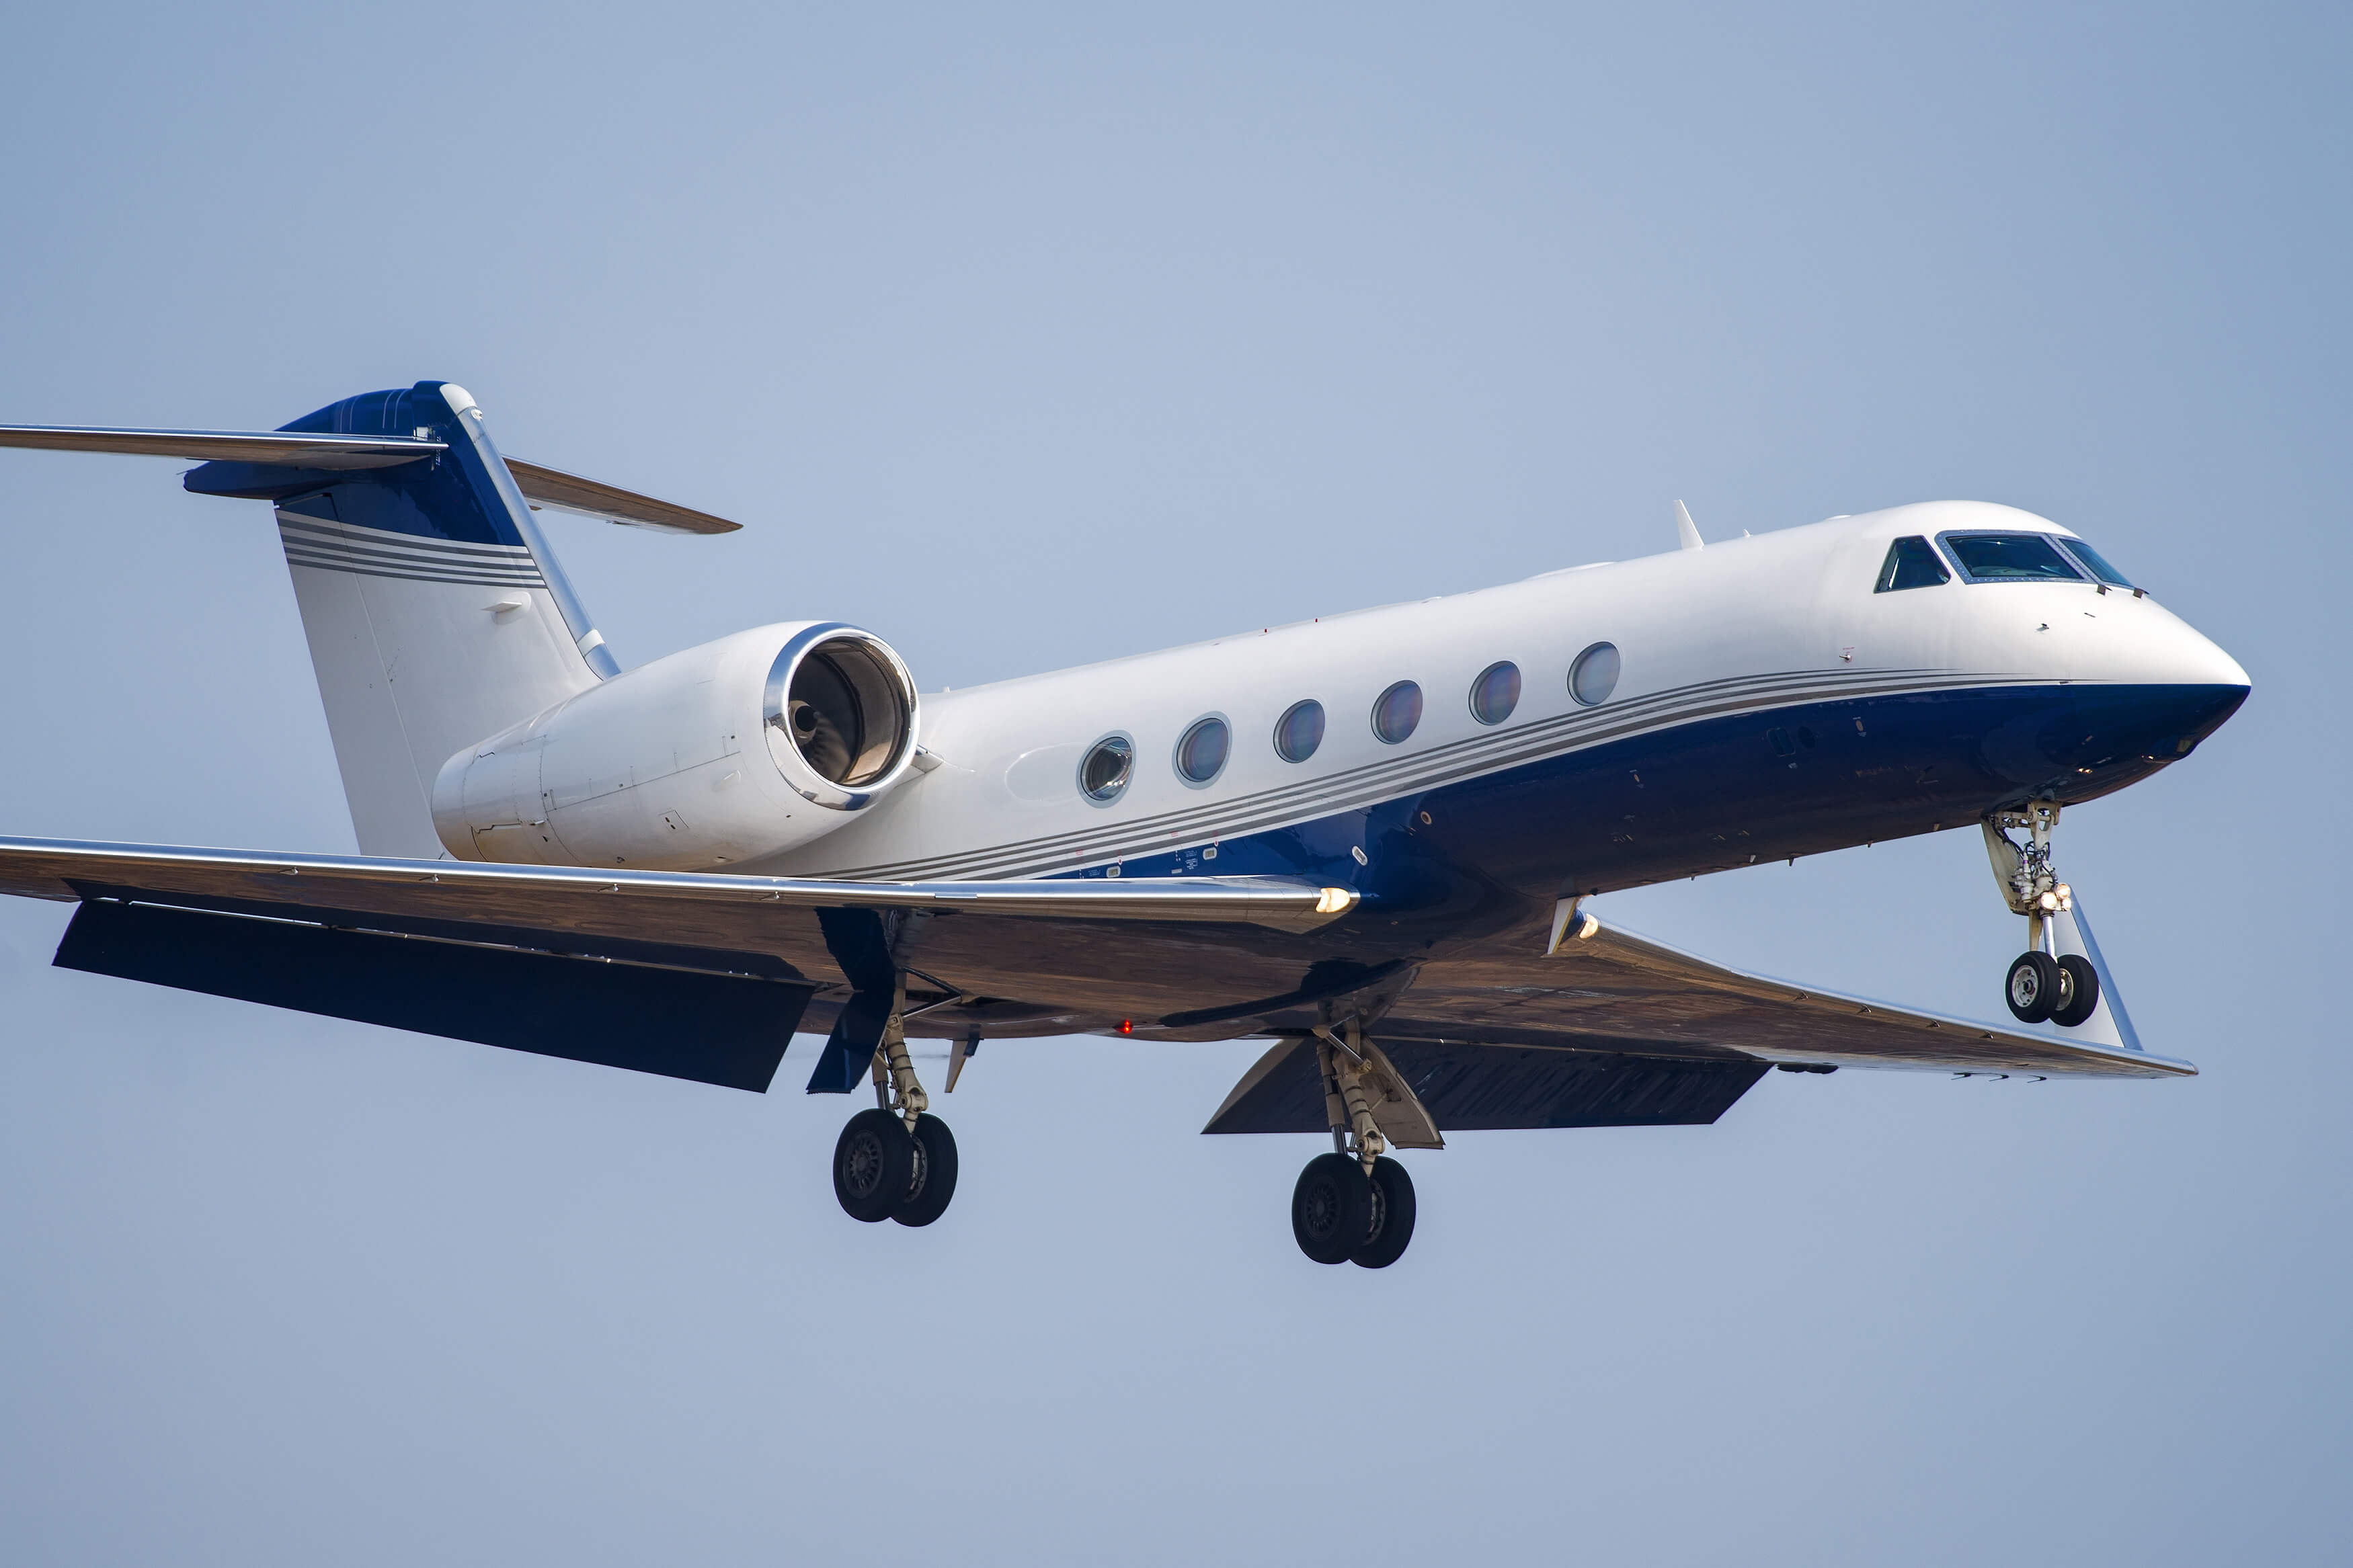 Gulfstream business jet on appraoch